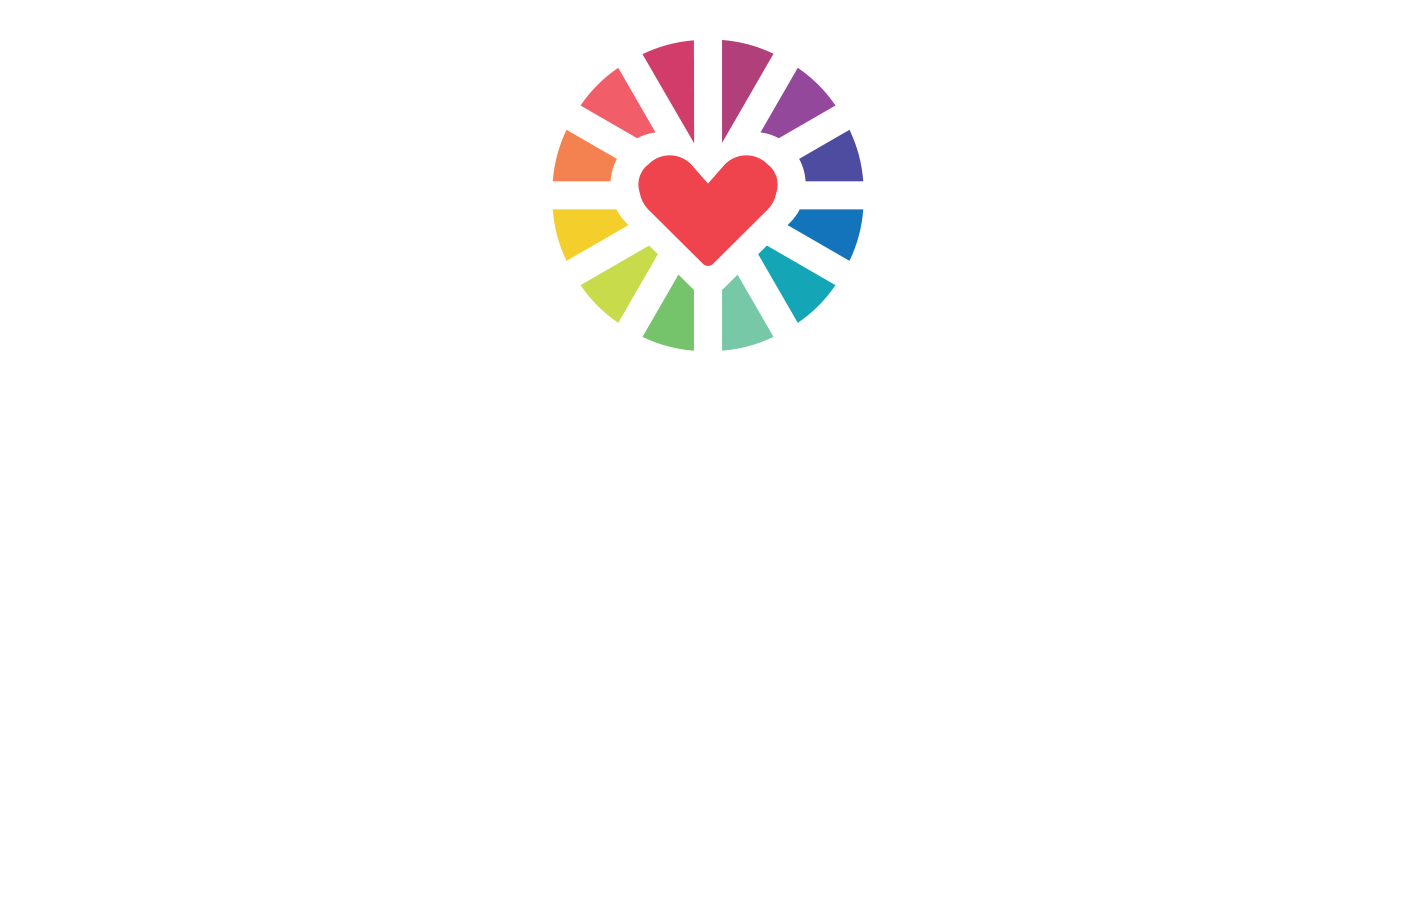 Heart For Children Inc.